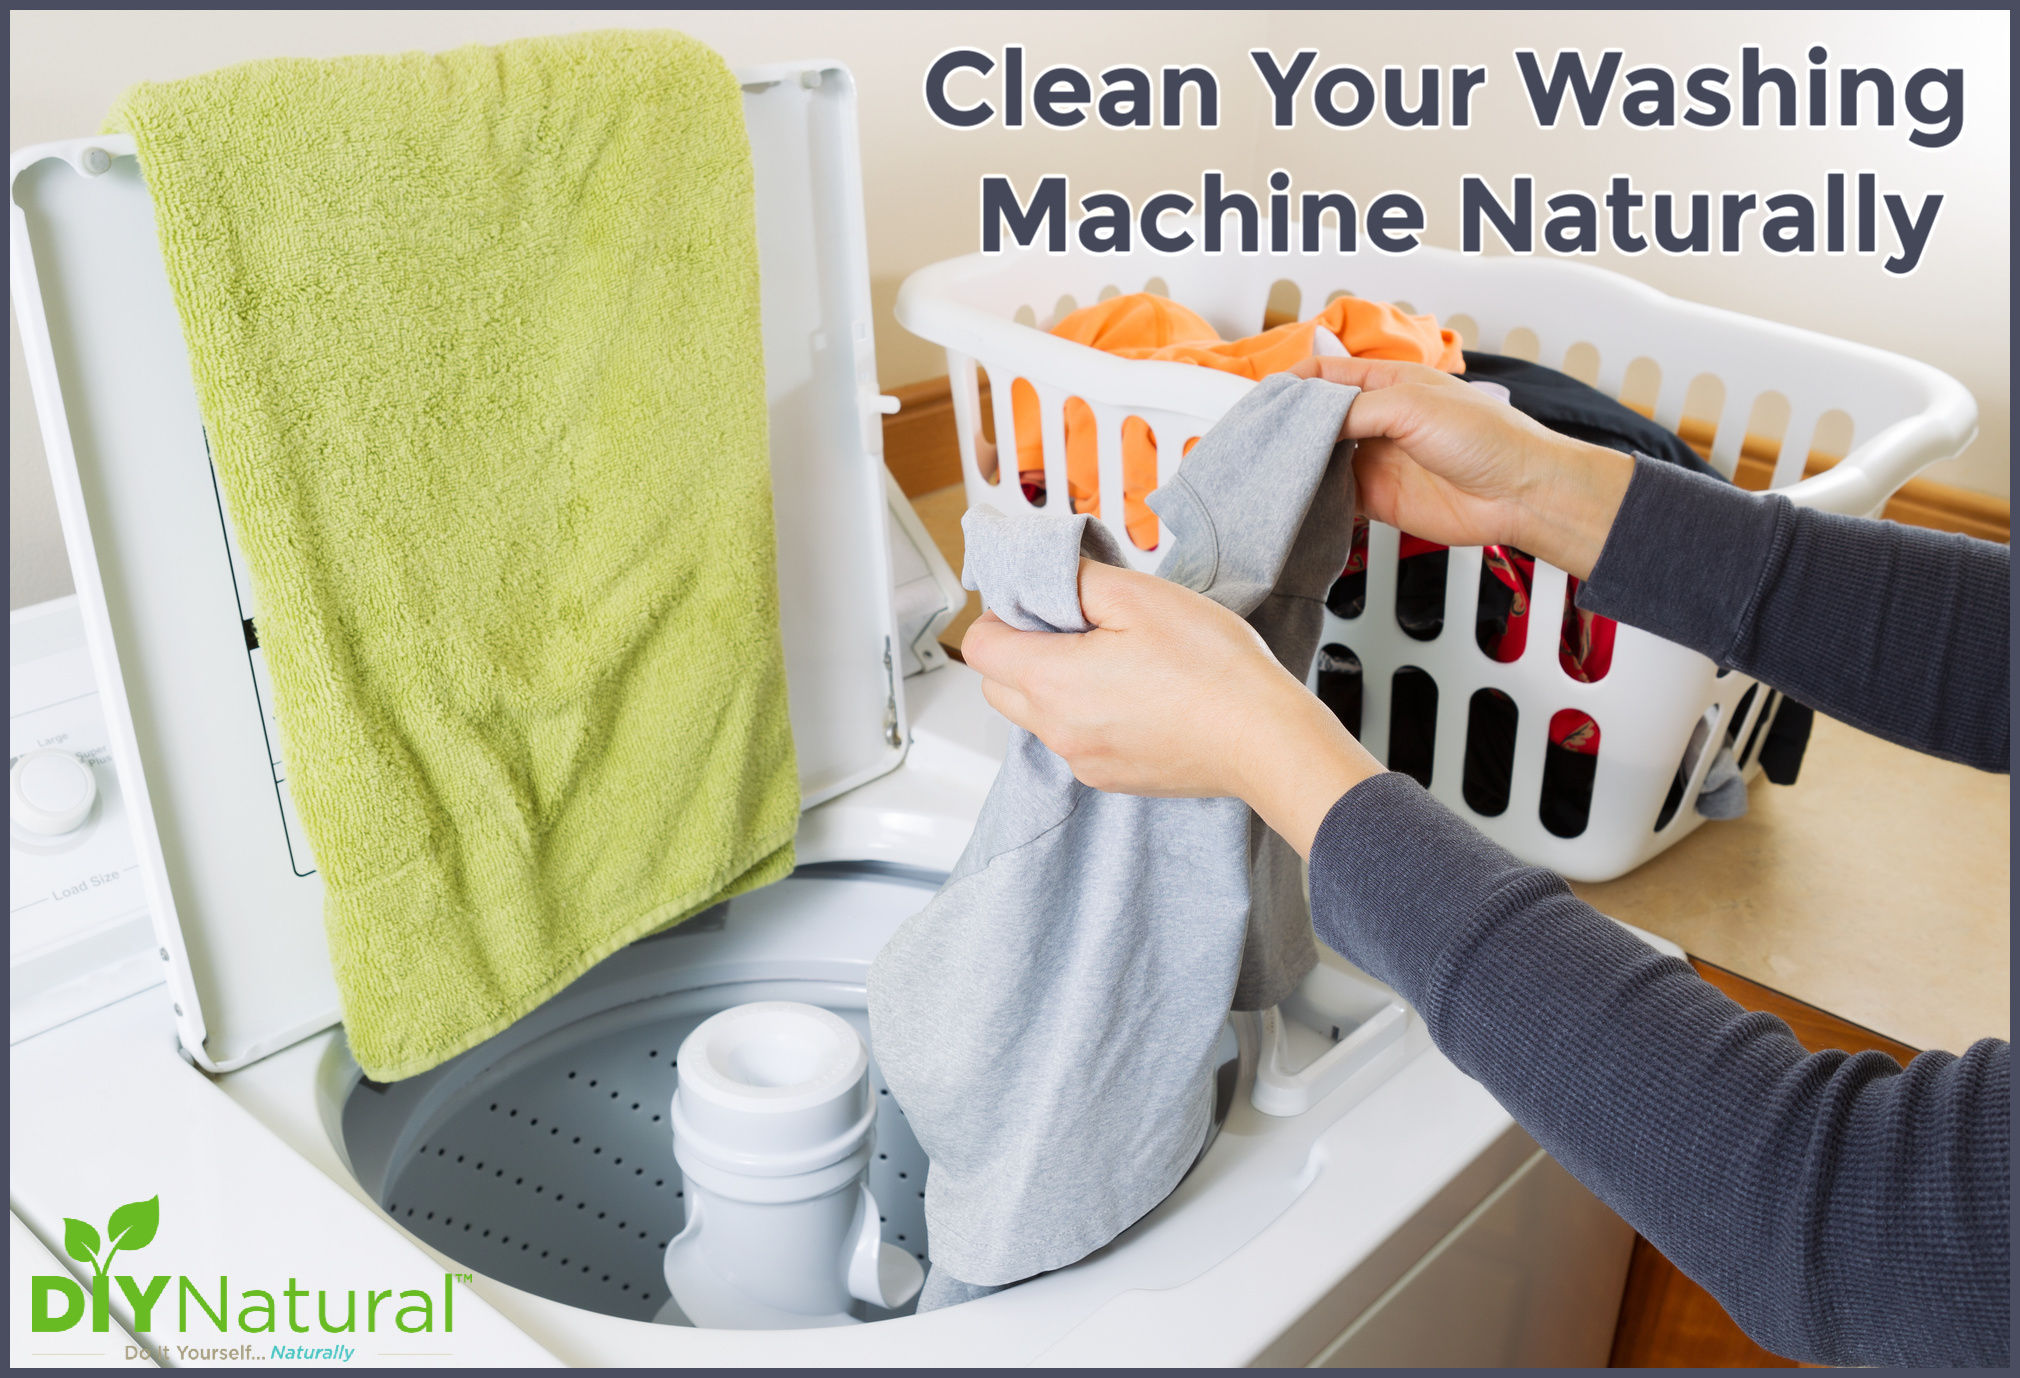 How To Clean Washing Machine Naturally A Top Loading Washer